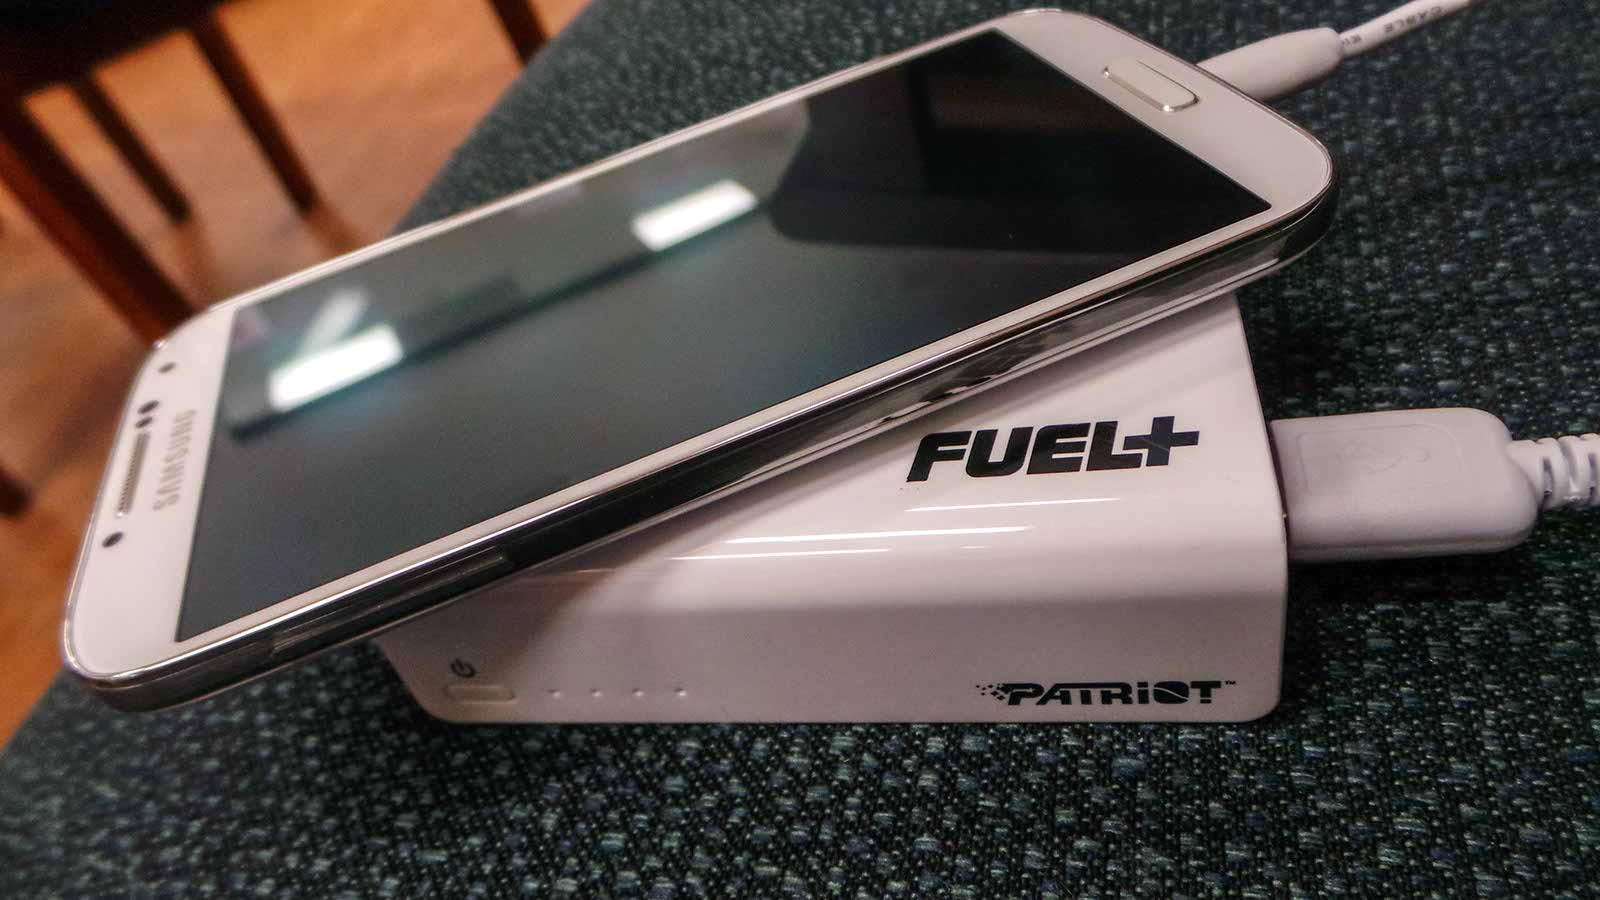 Patriot-Fuel-Battery